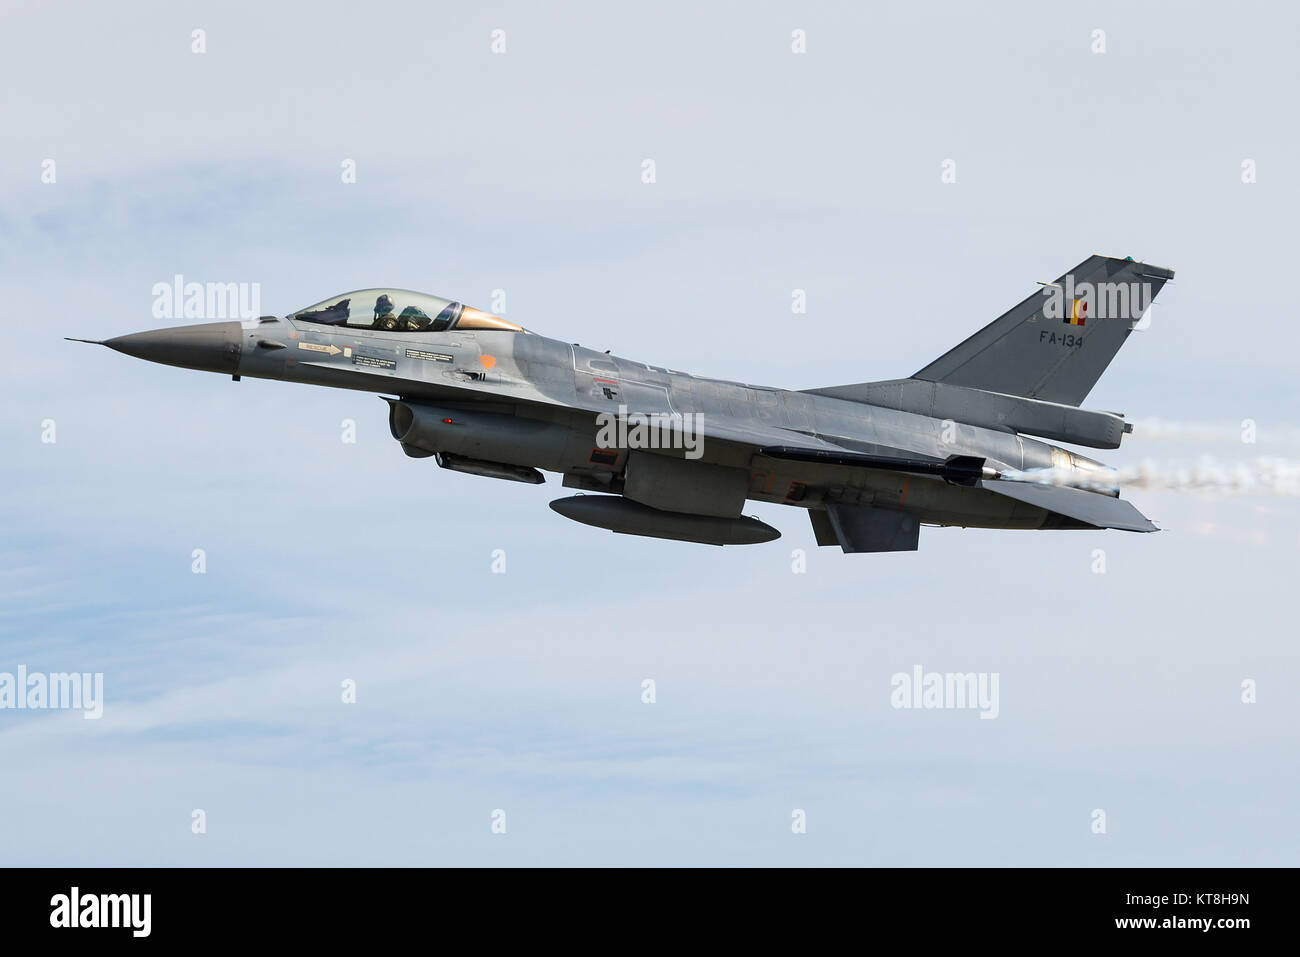 A F-16 fighter jet of the Belgian Air Force at the Florennes Air Base. - Stock Image